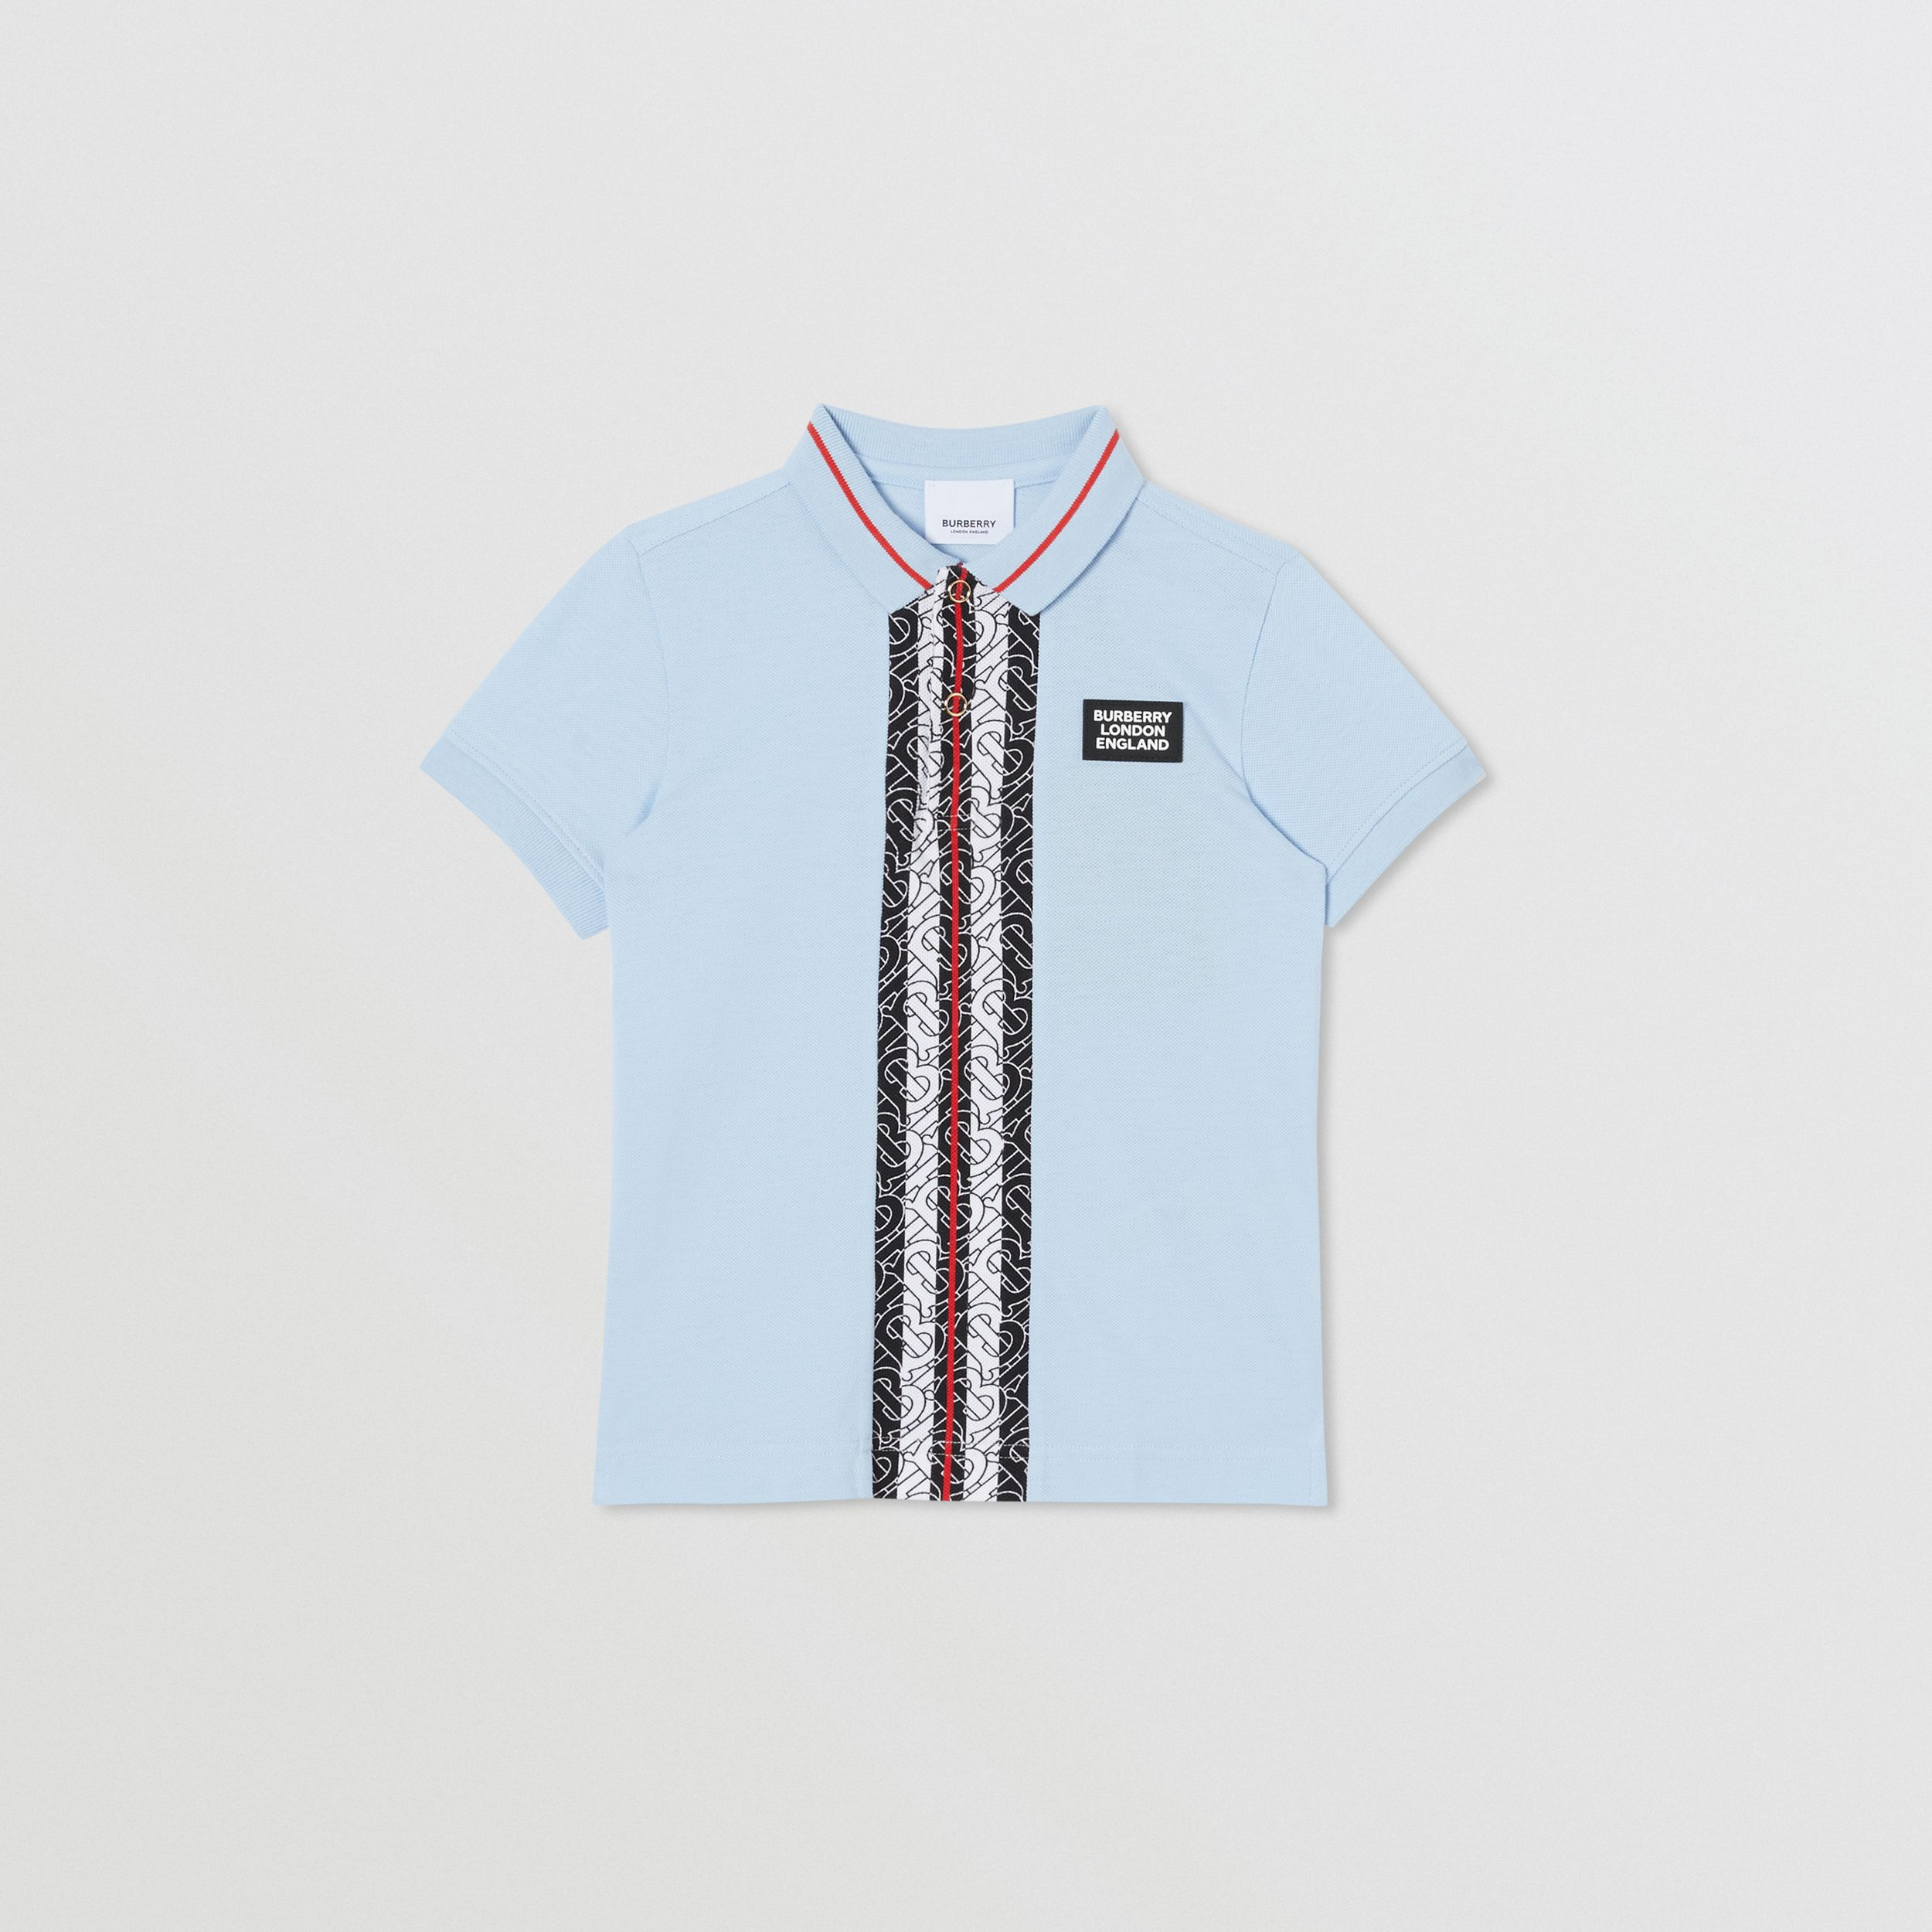 Monogram Stripe Print Cotton Piqué Polo Shirt in Pale Blue | Burberry Hong Kong S.A.R. - 1